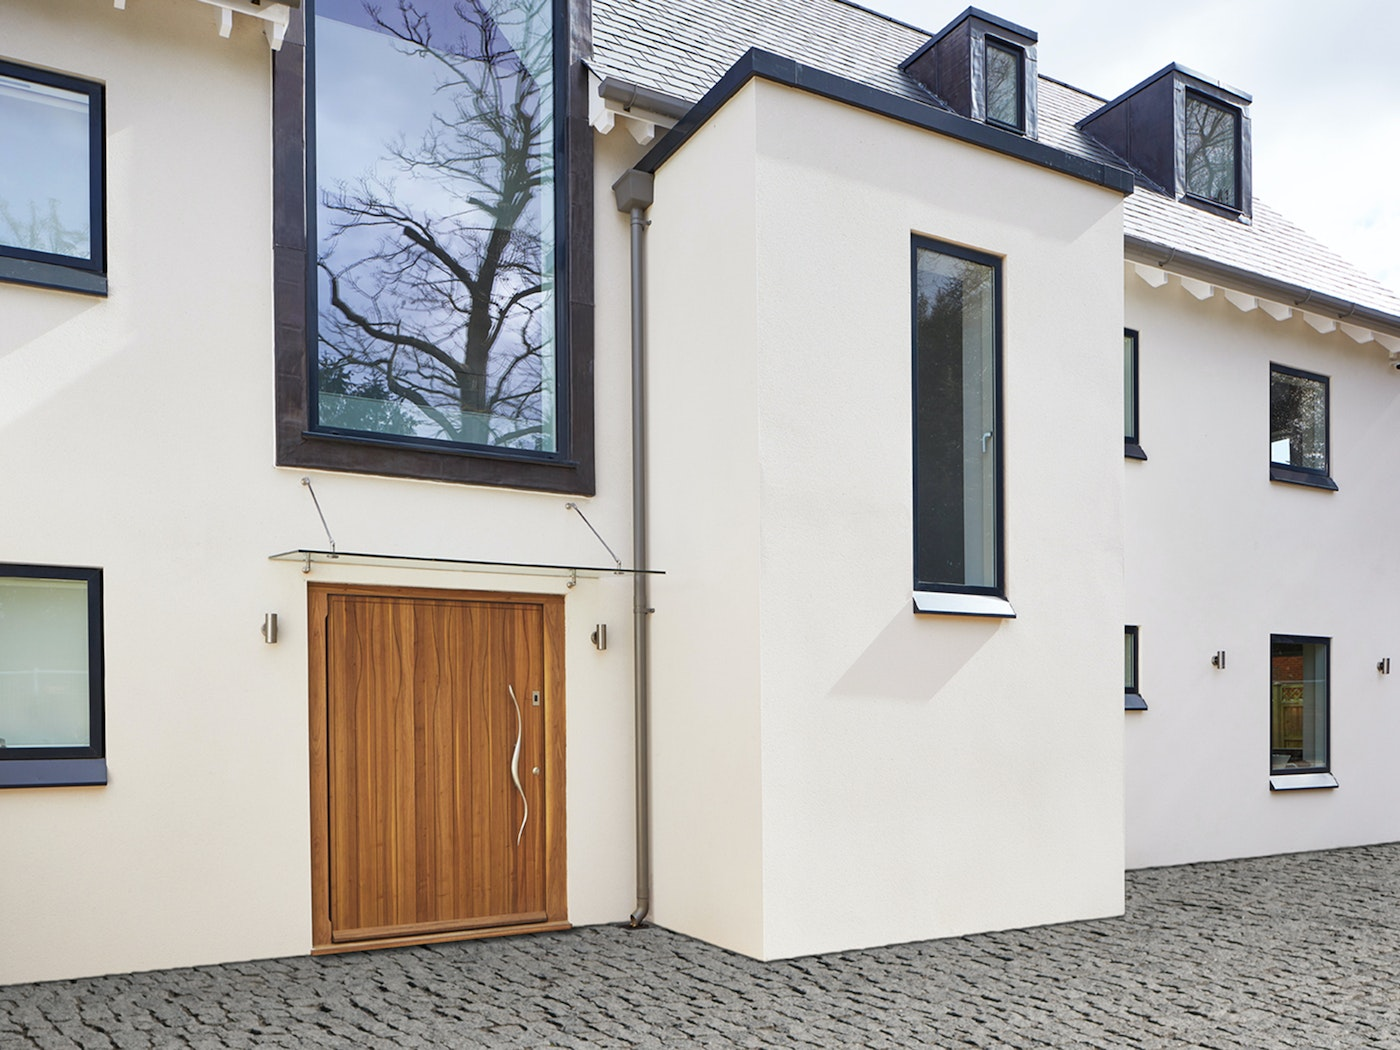 A glass door canopy provides an elegant design feature as well as protection